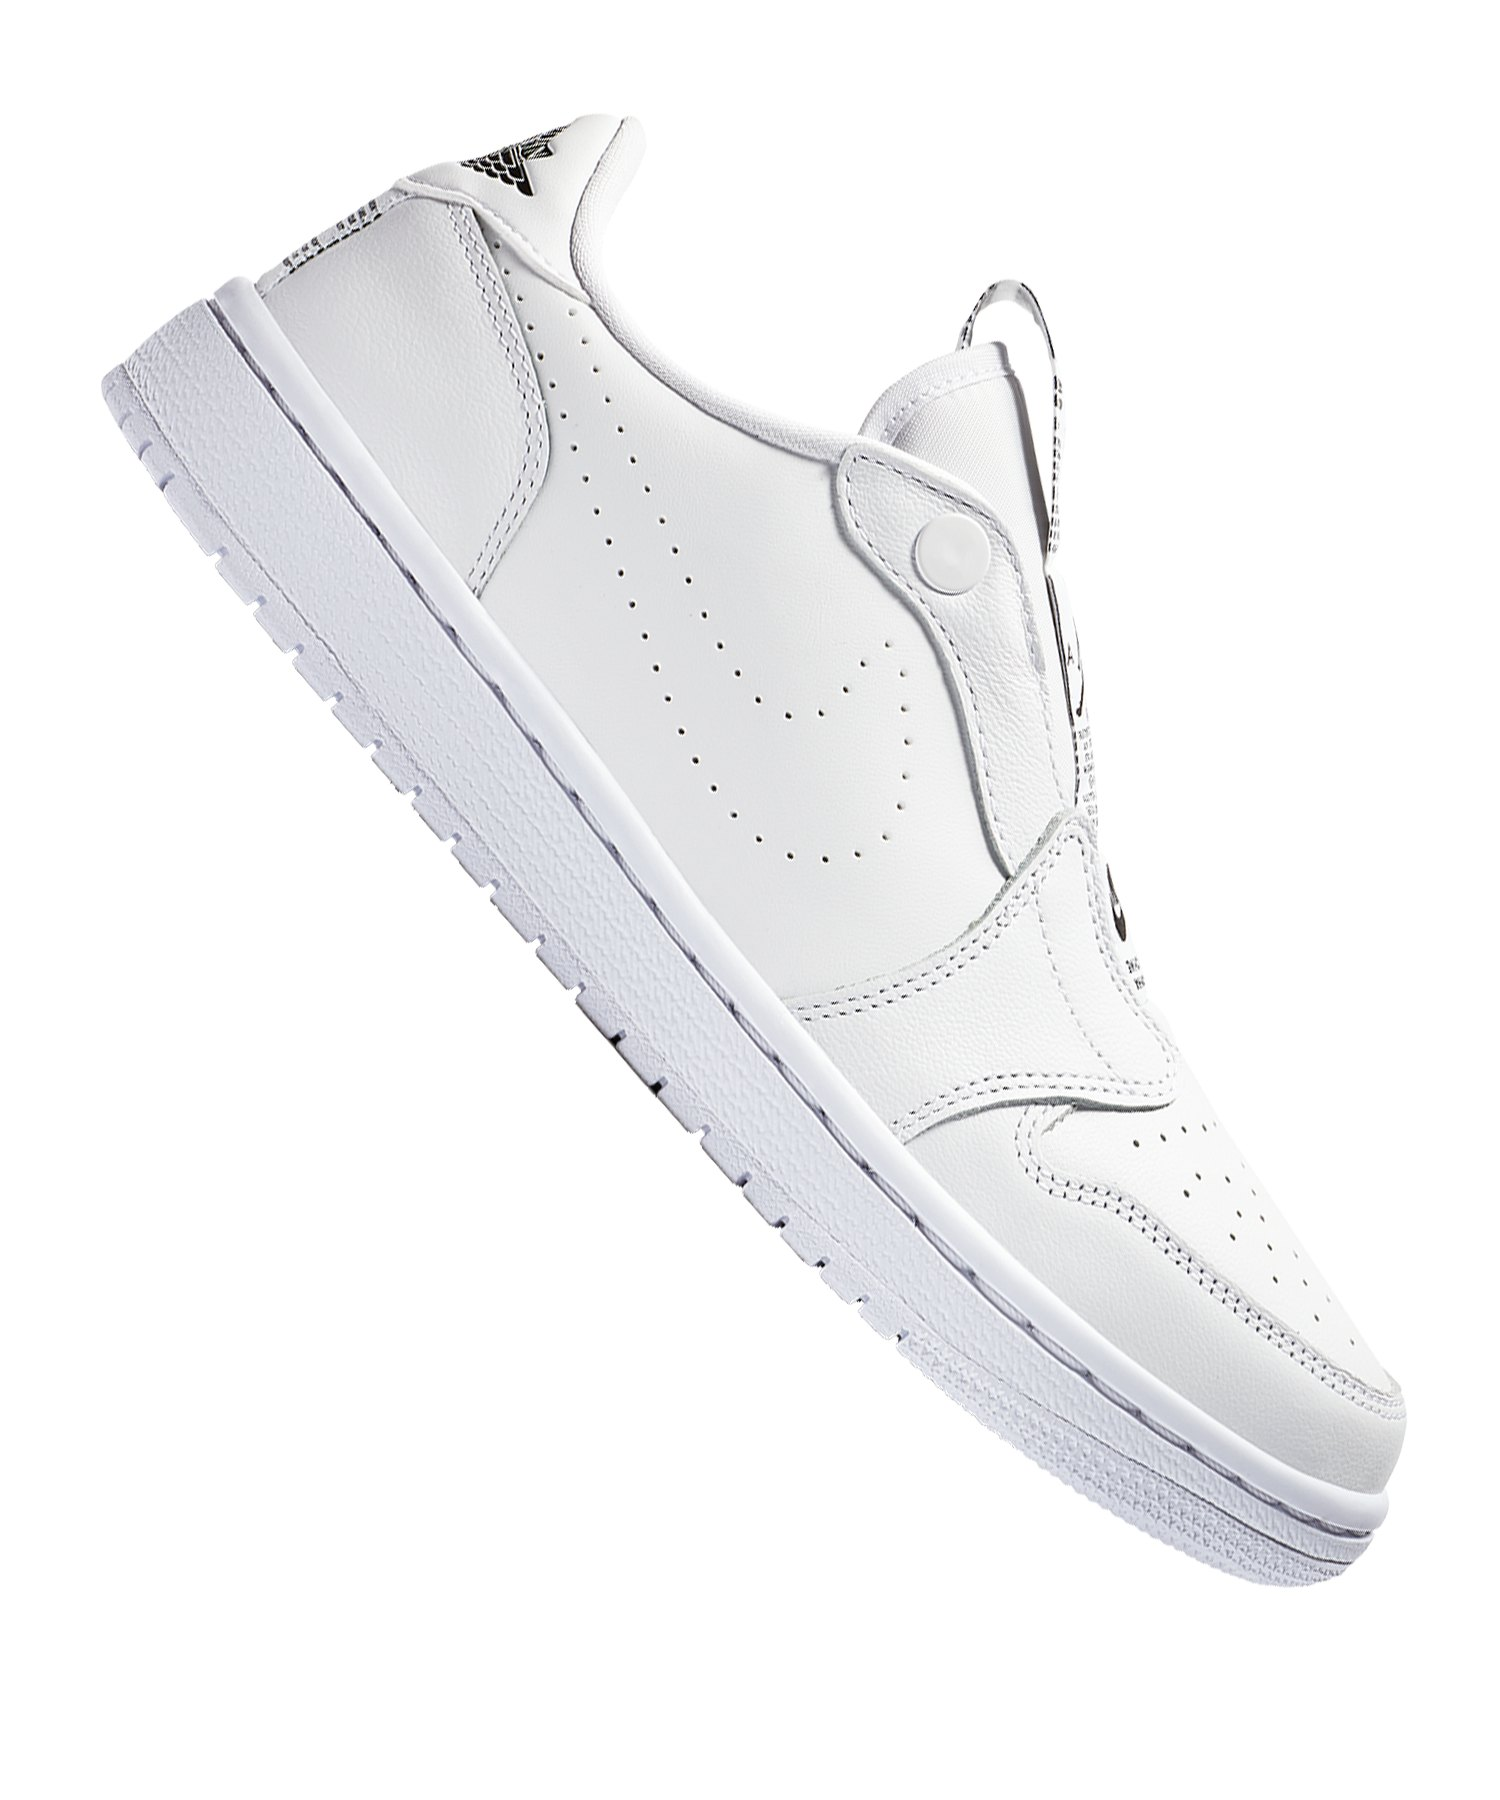 Nike Jordan Kb Damen Design Schuhe at WE2IY9DH